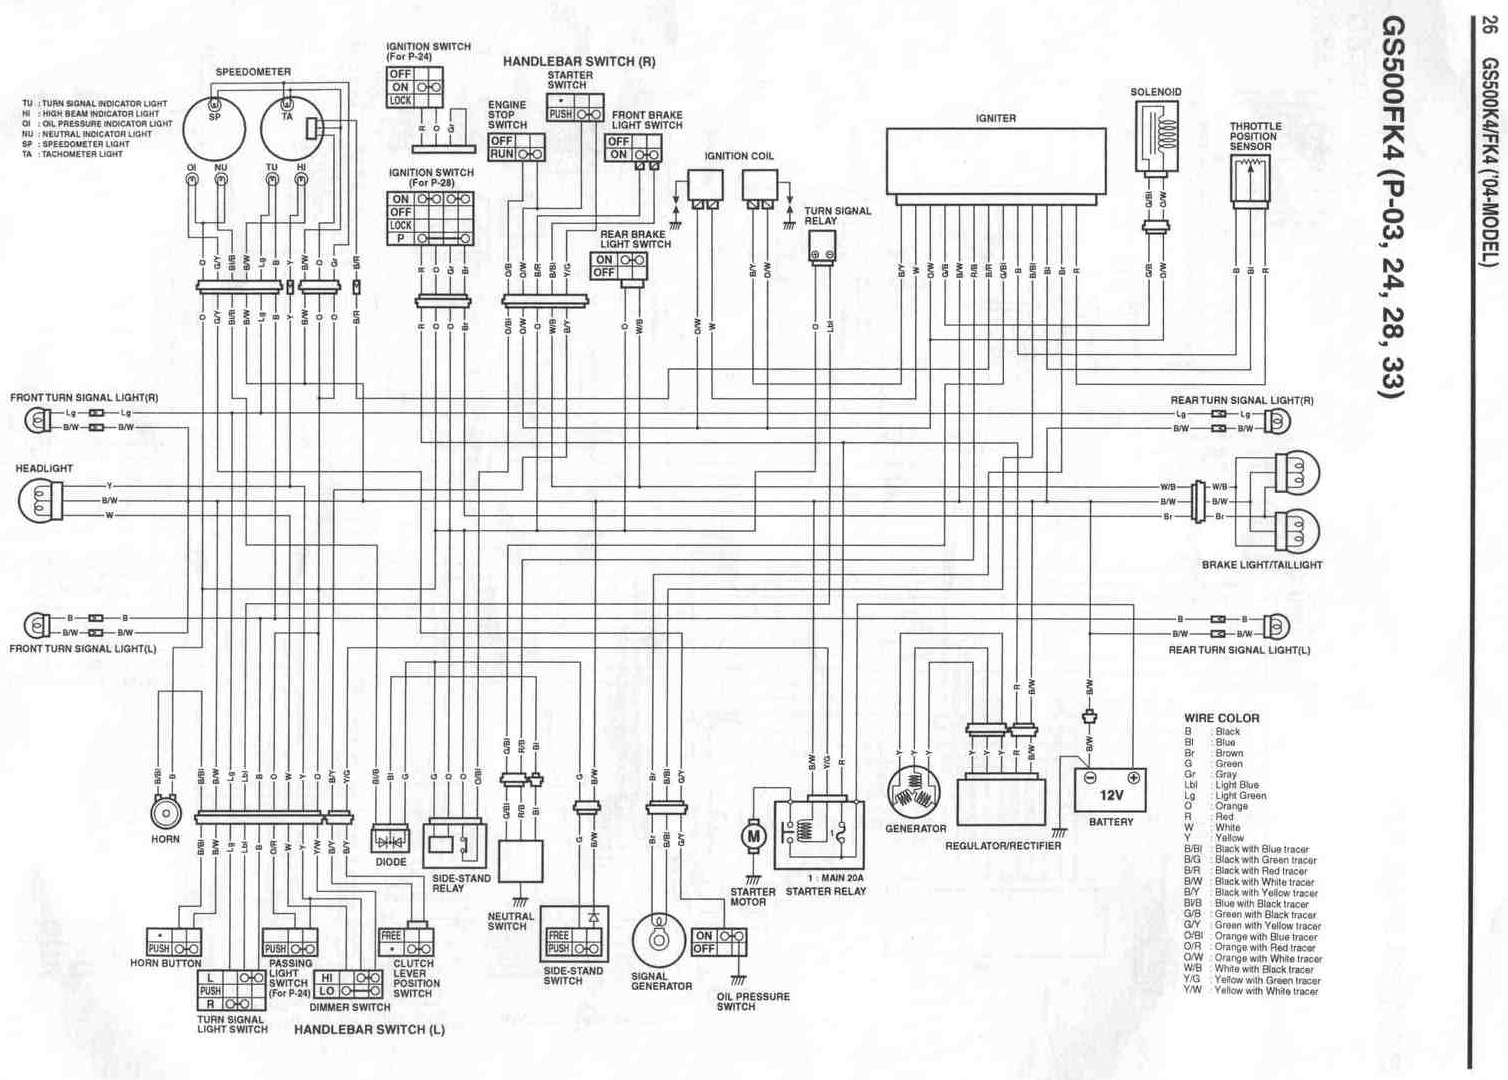 Beautiful Audi A6 Wiring Diagram Horns Photos - Electrical System ...